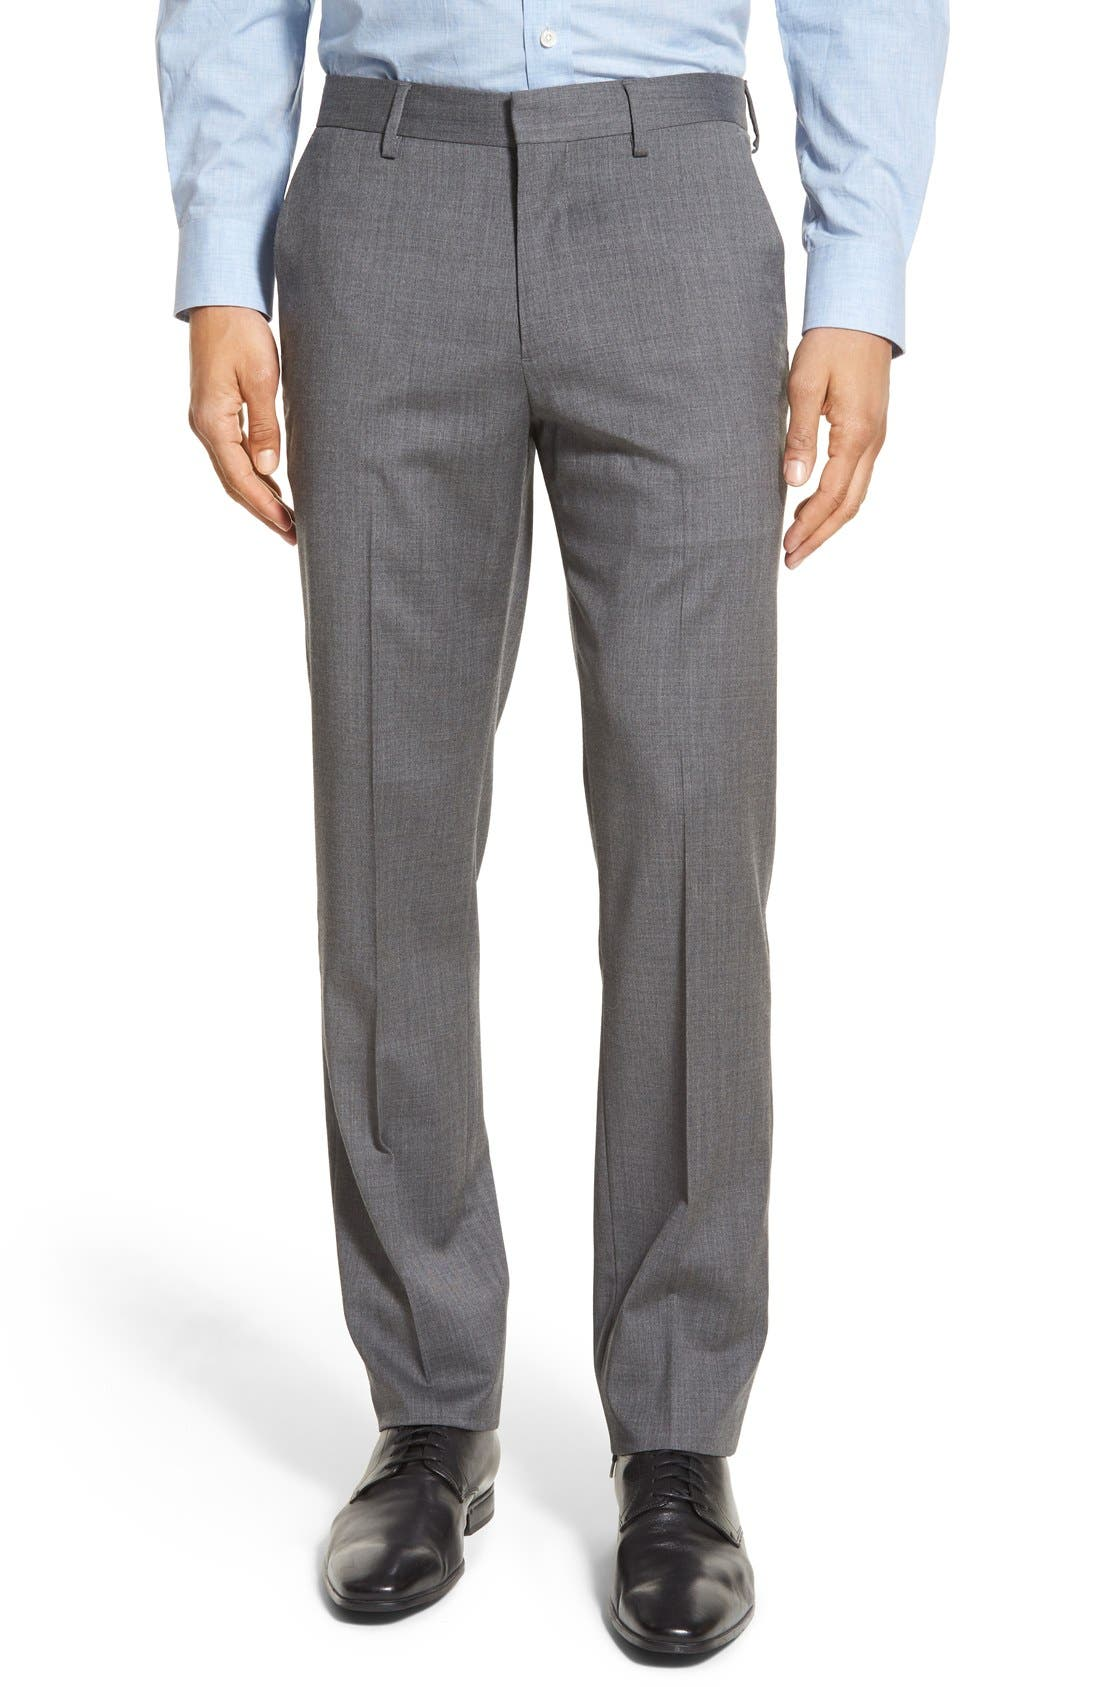 BONOBOS Jetsetter Slim Fit Flat Front Solid Stretch